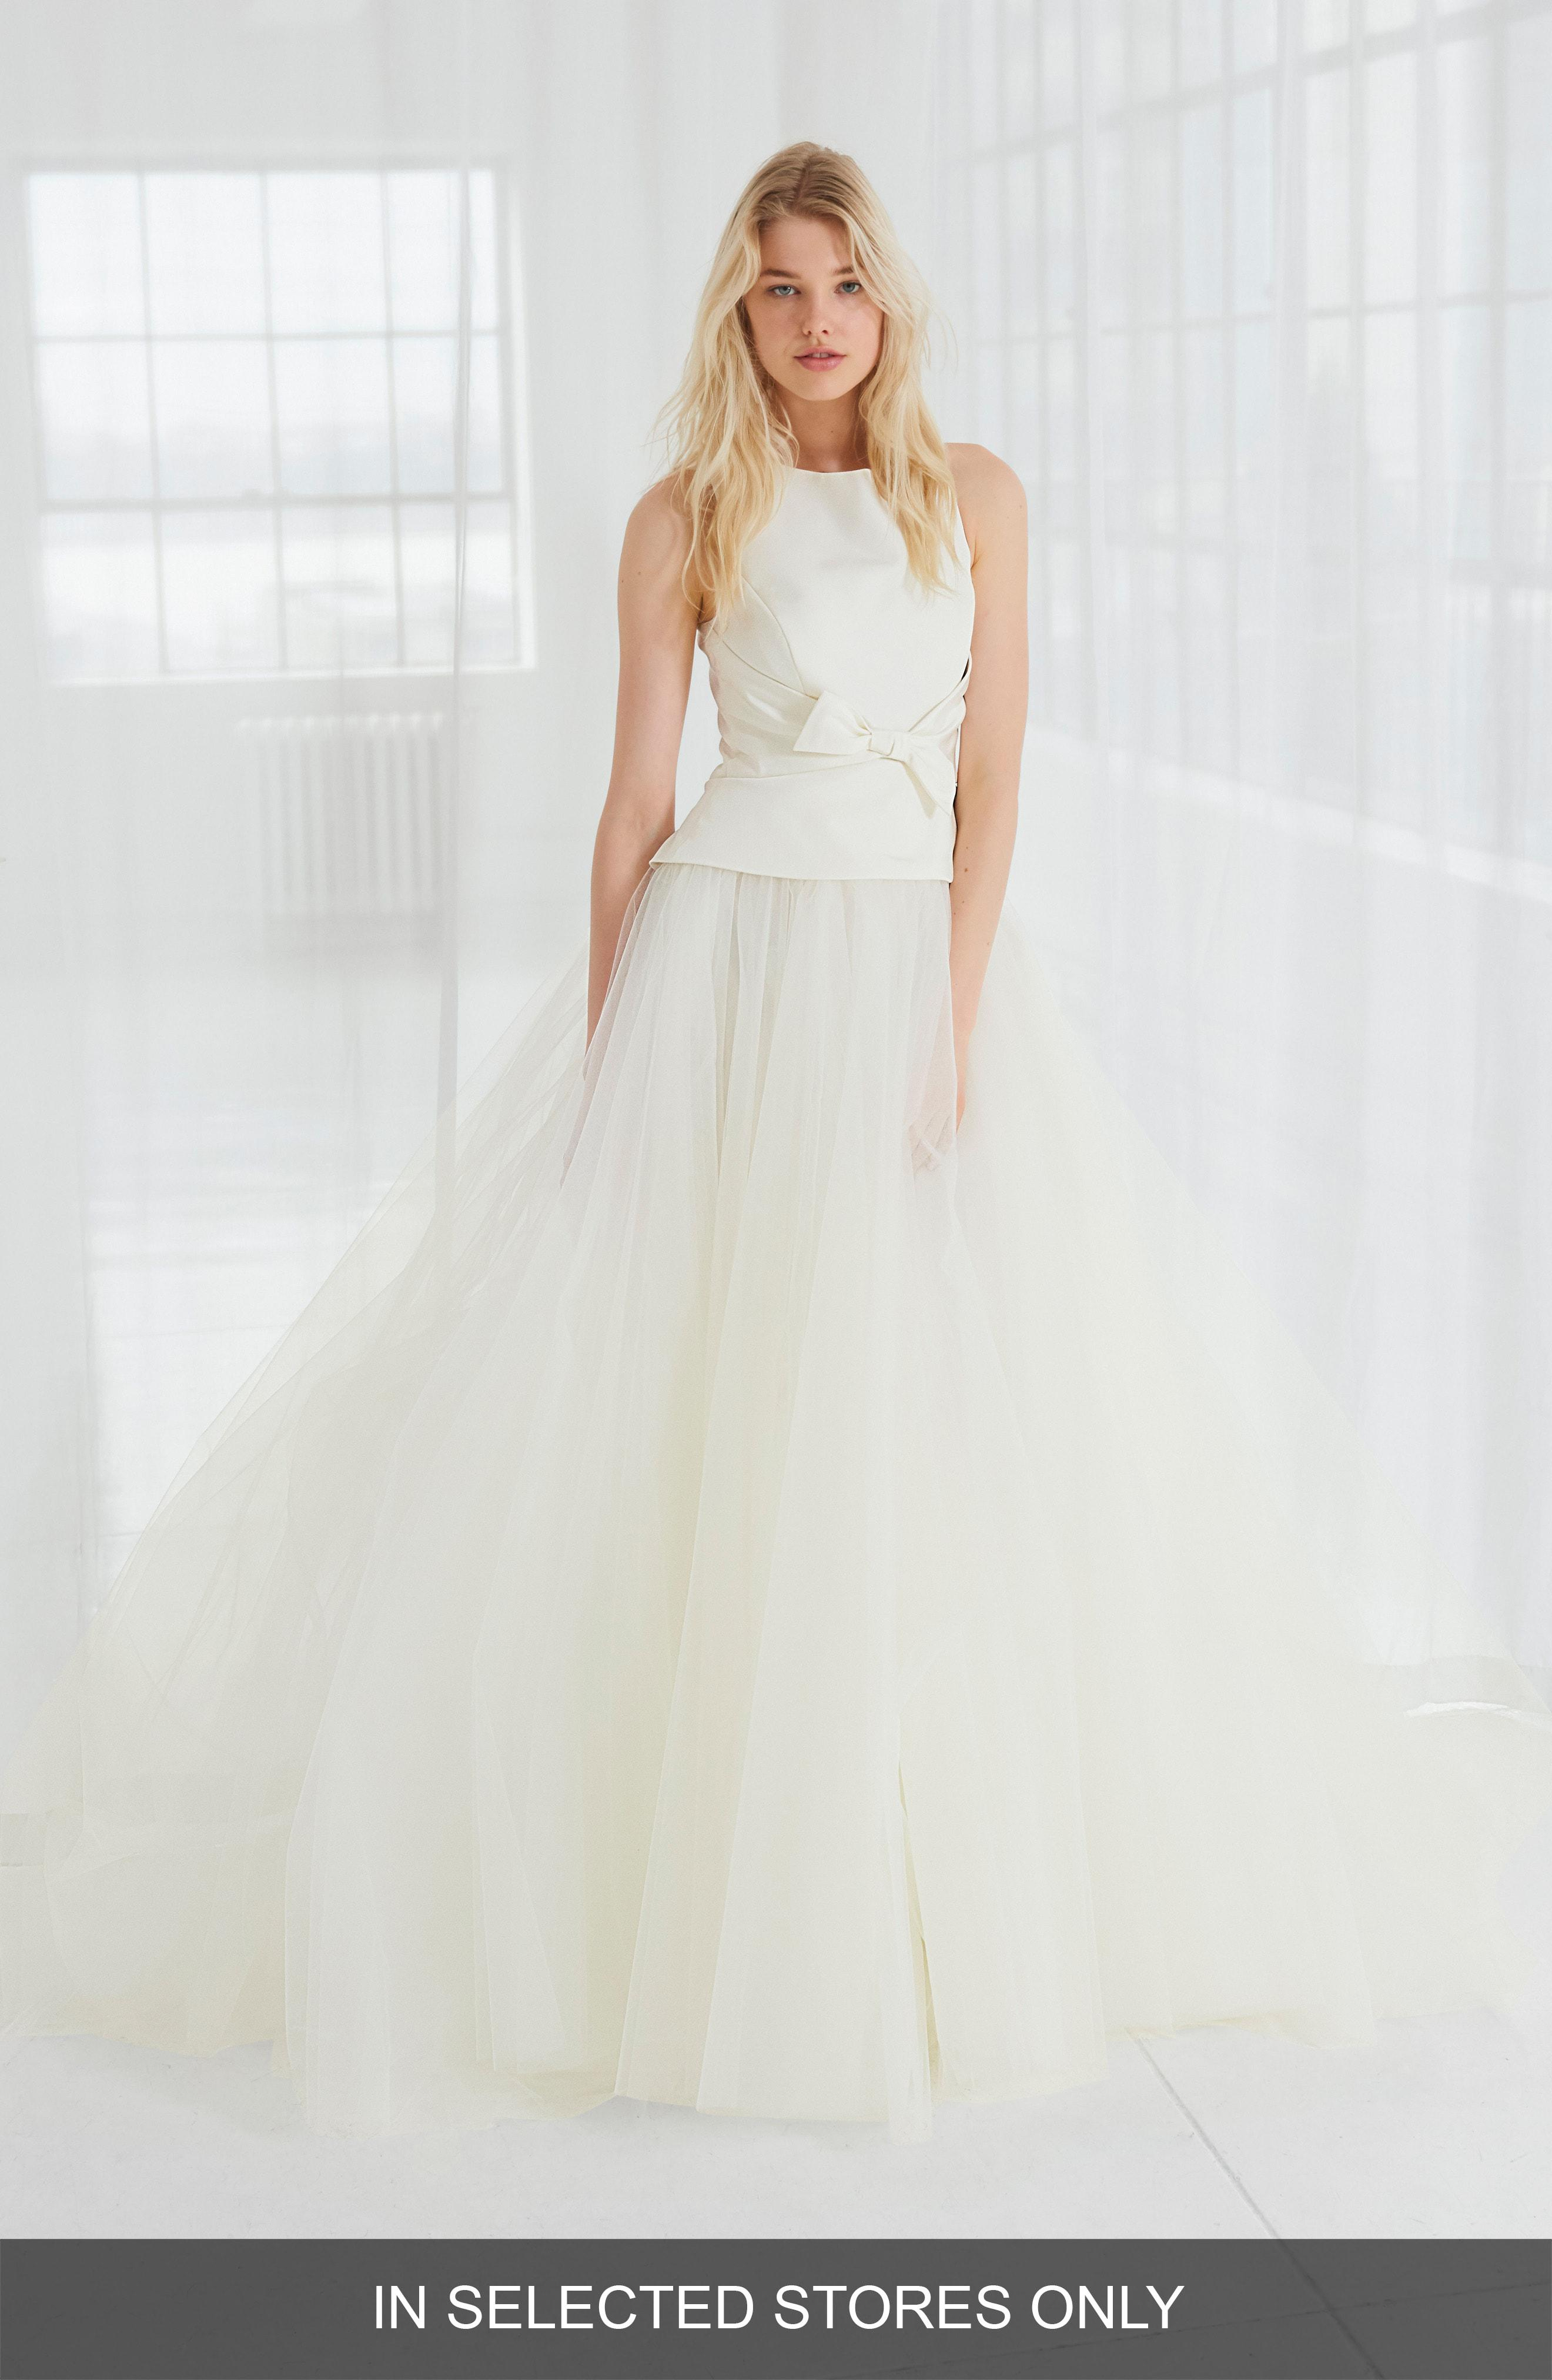 76deaffa66ed3 Lyst - Amsale Miller Faille & Tulle Ball Gown in White